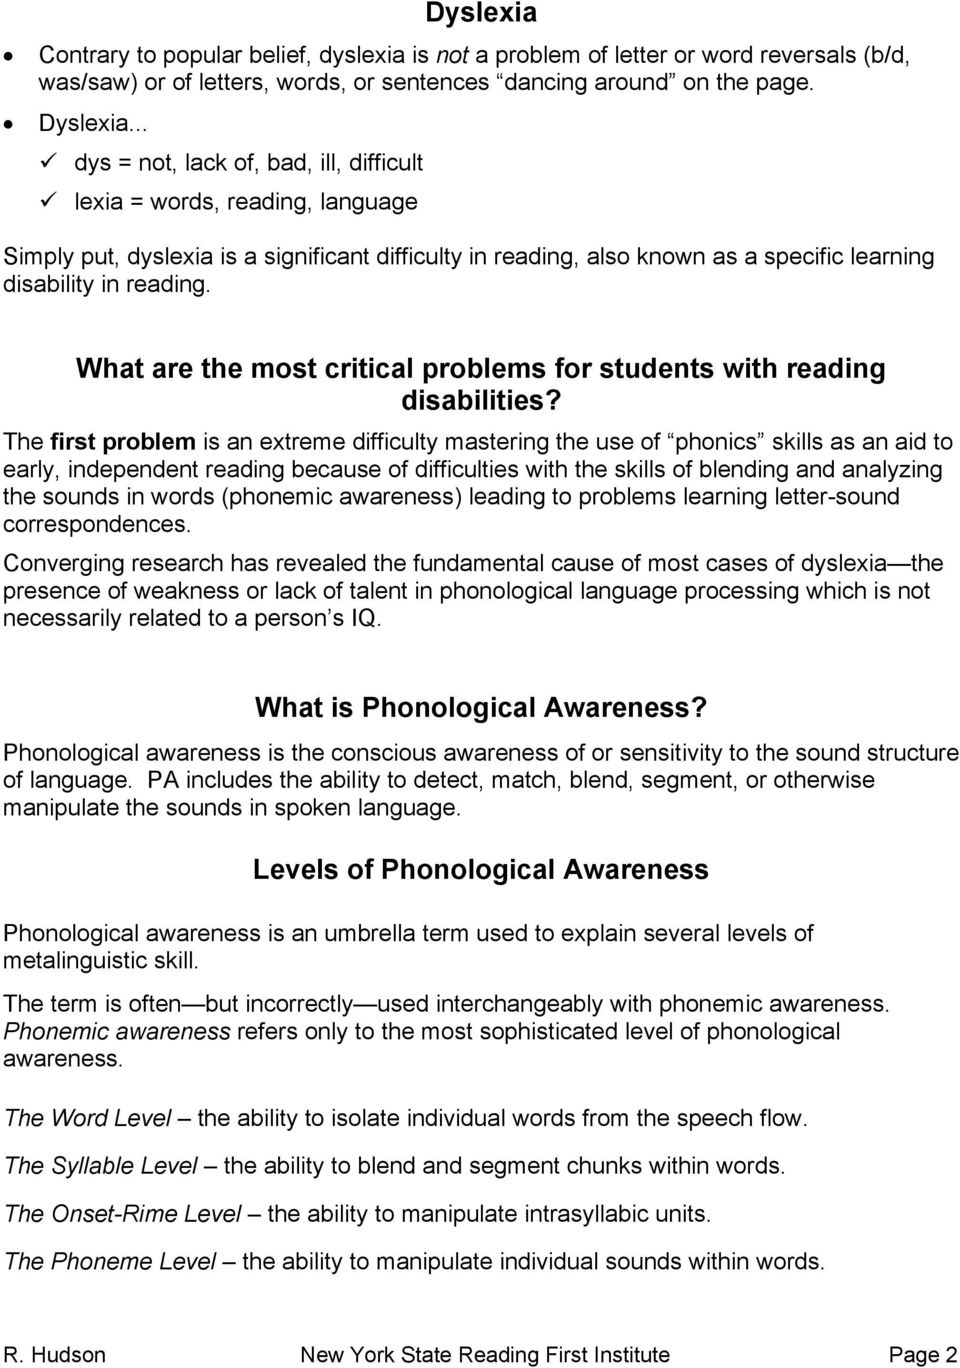 What are the most critical problems for students with reading disabilities?